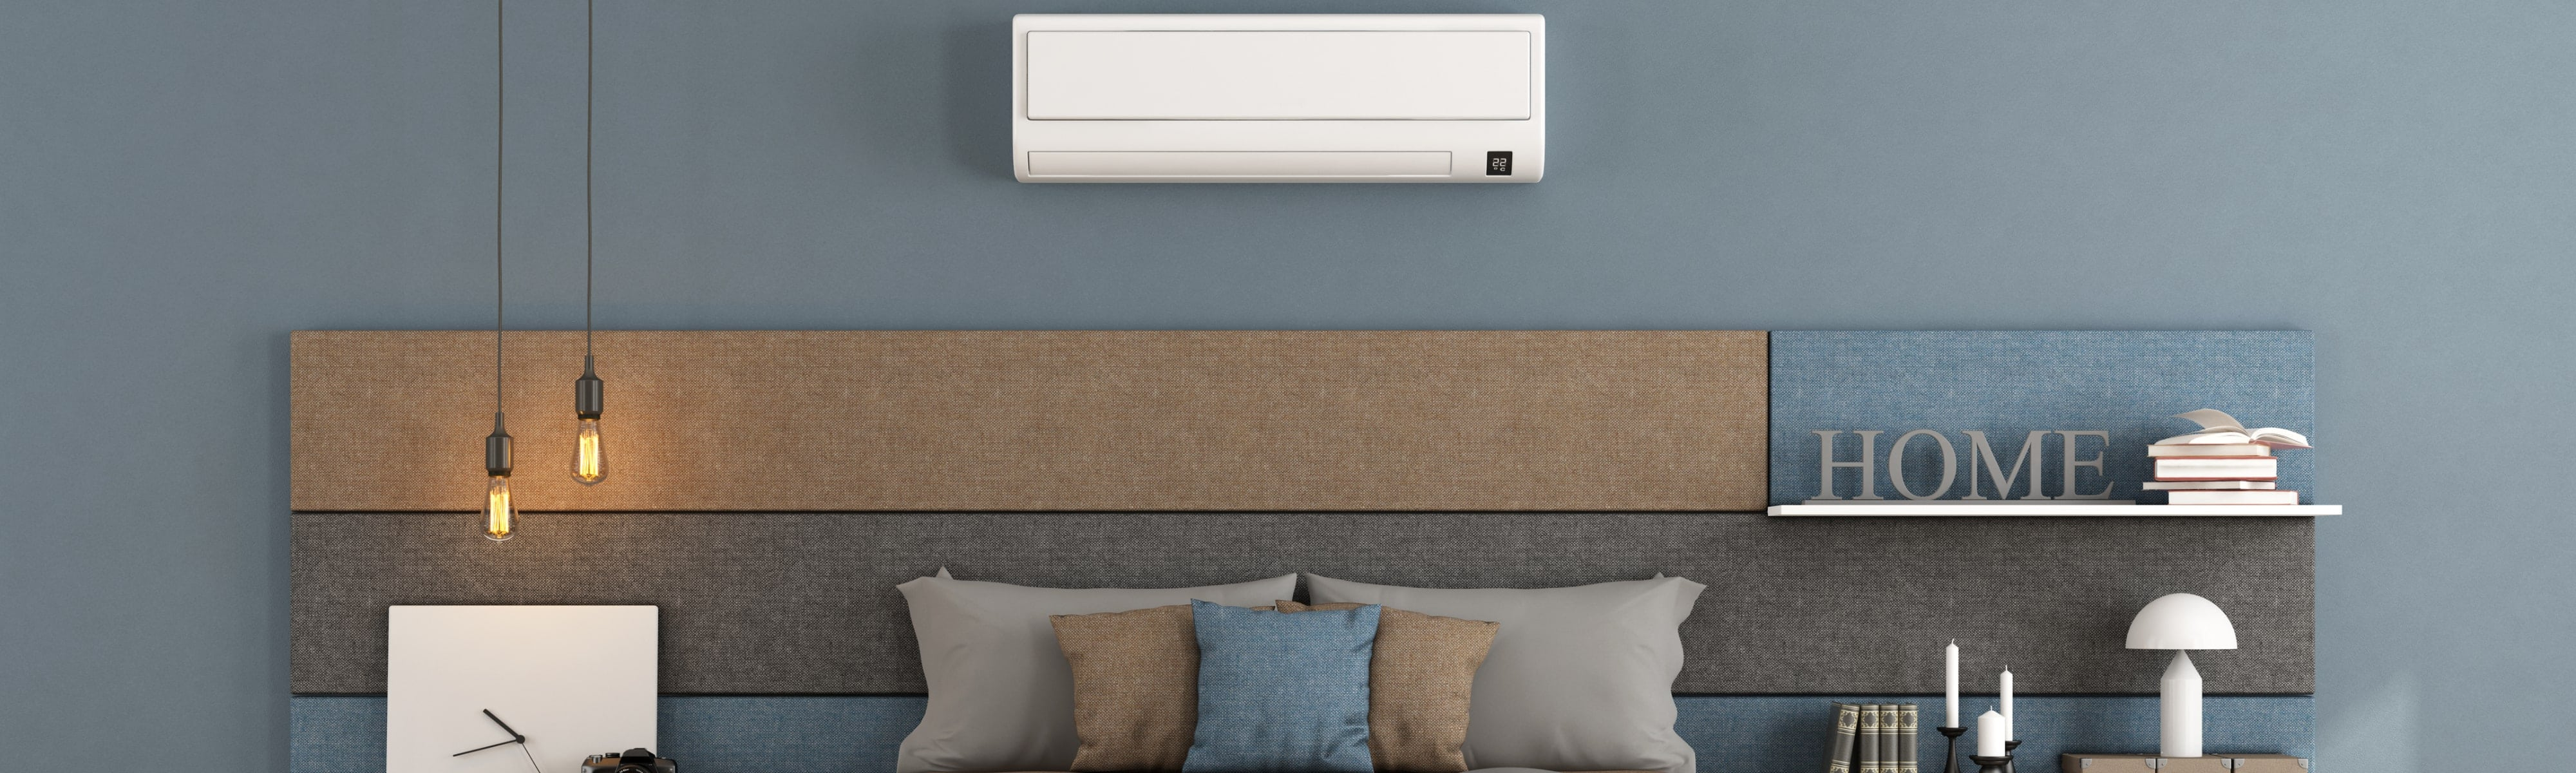 Ductless air conditioner over bed.